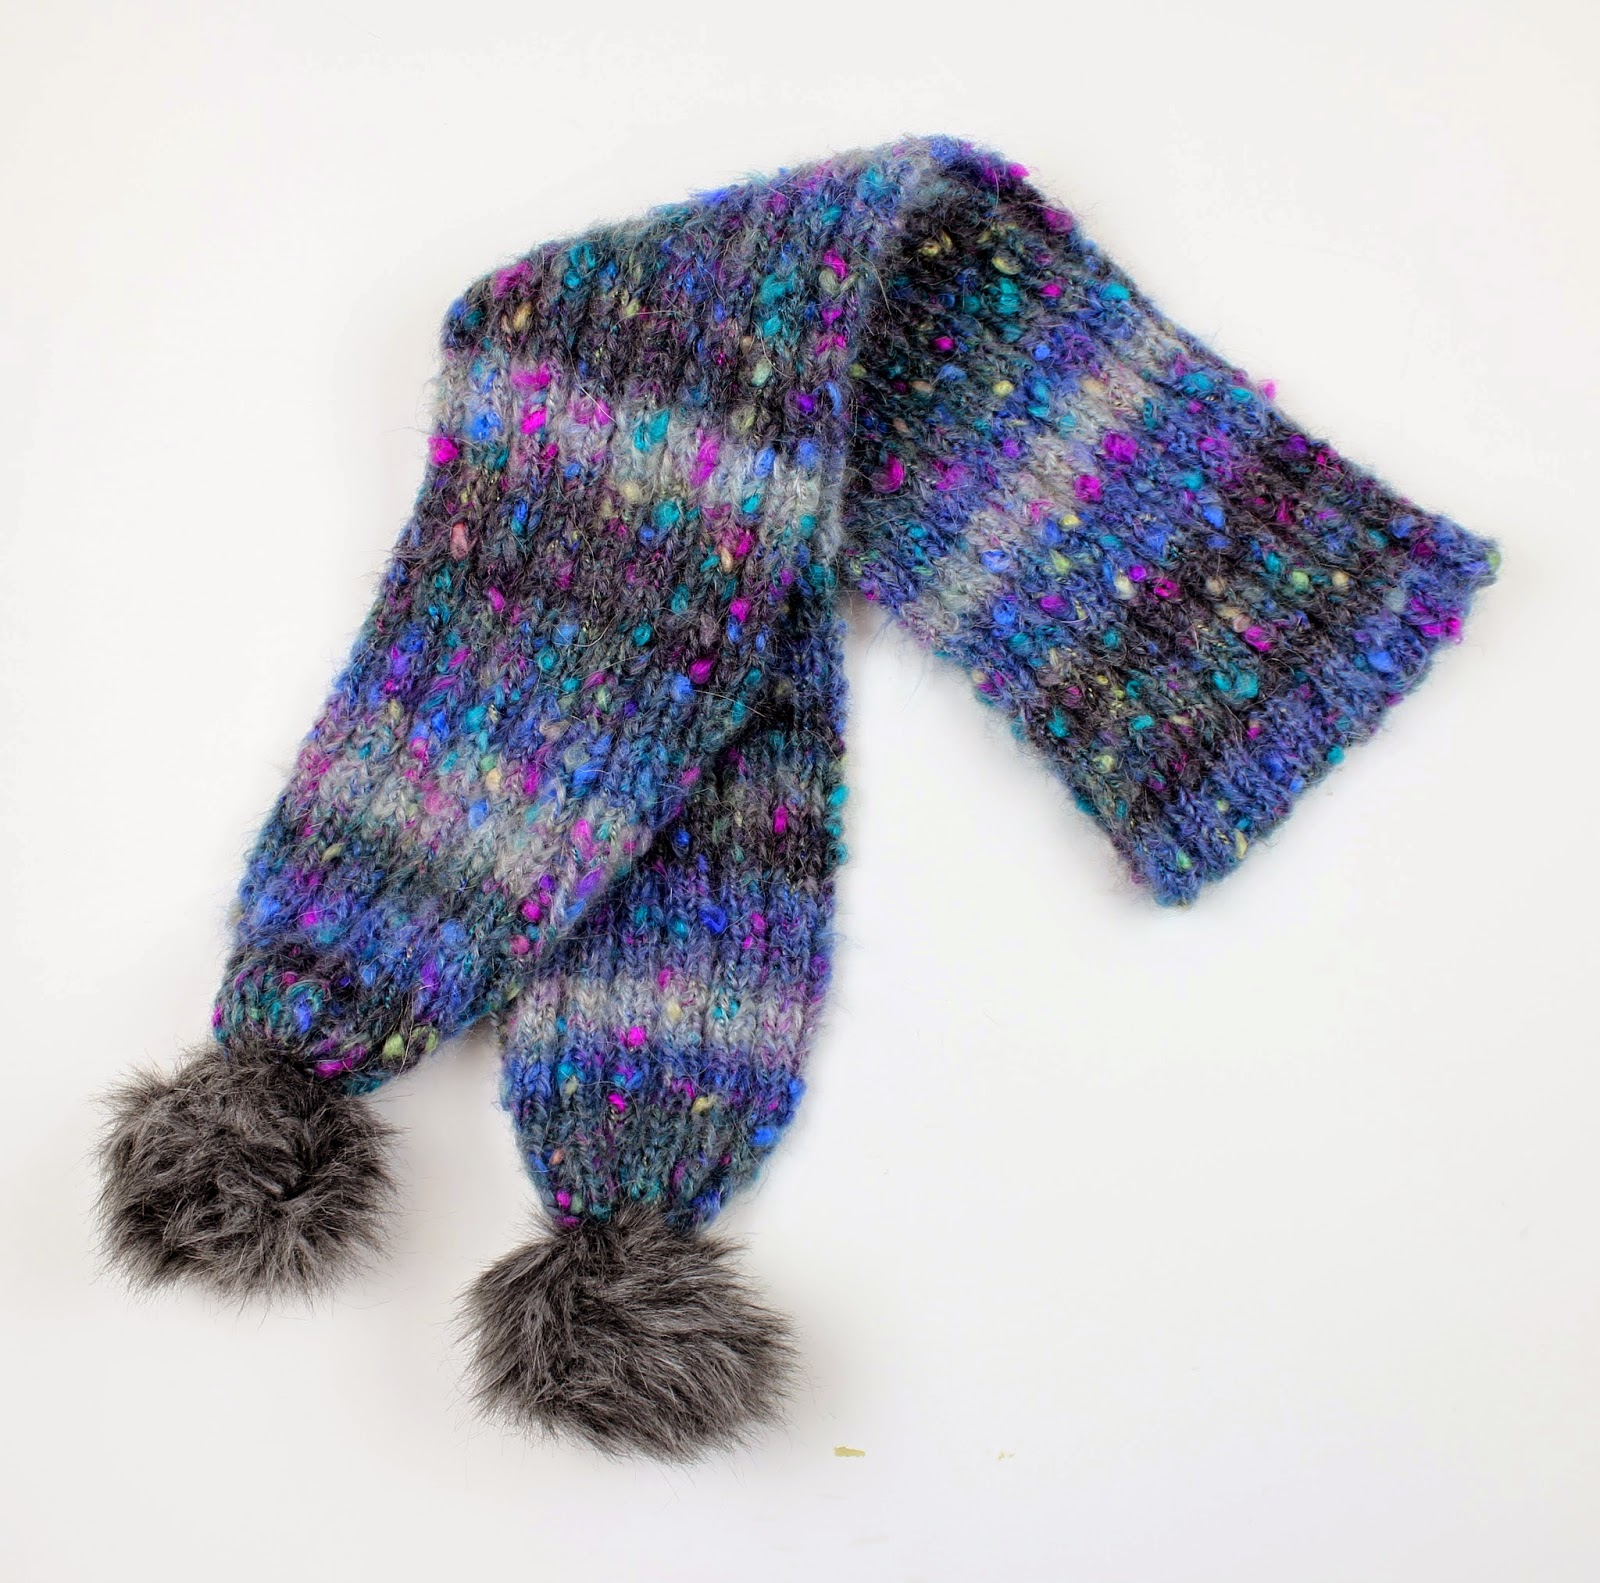 http://www.puppyarn.com/shop/product_info.php/cPath/6_49/products_id/7444